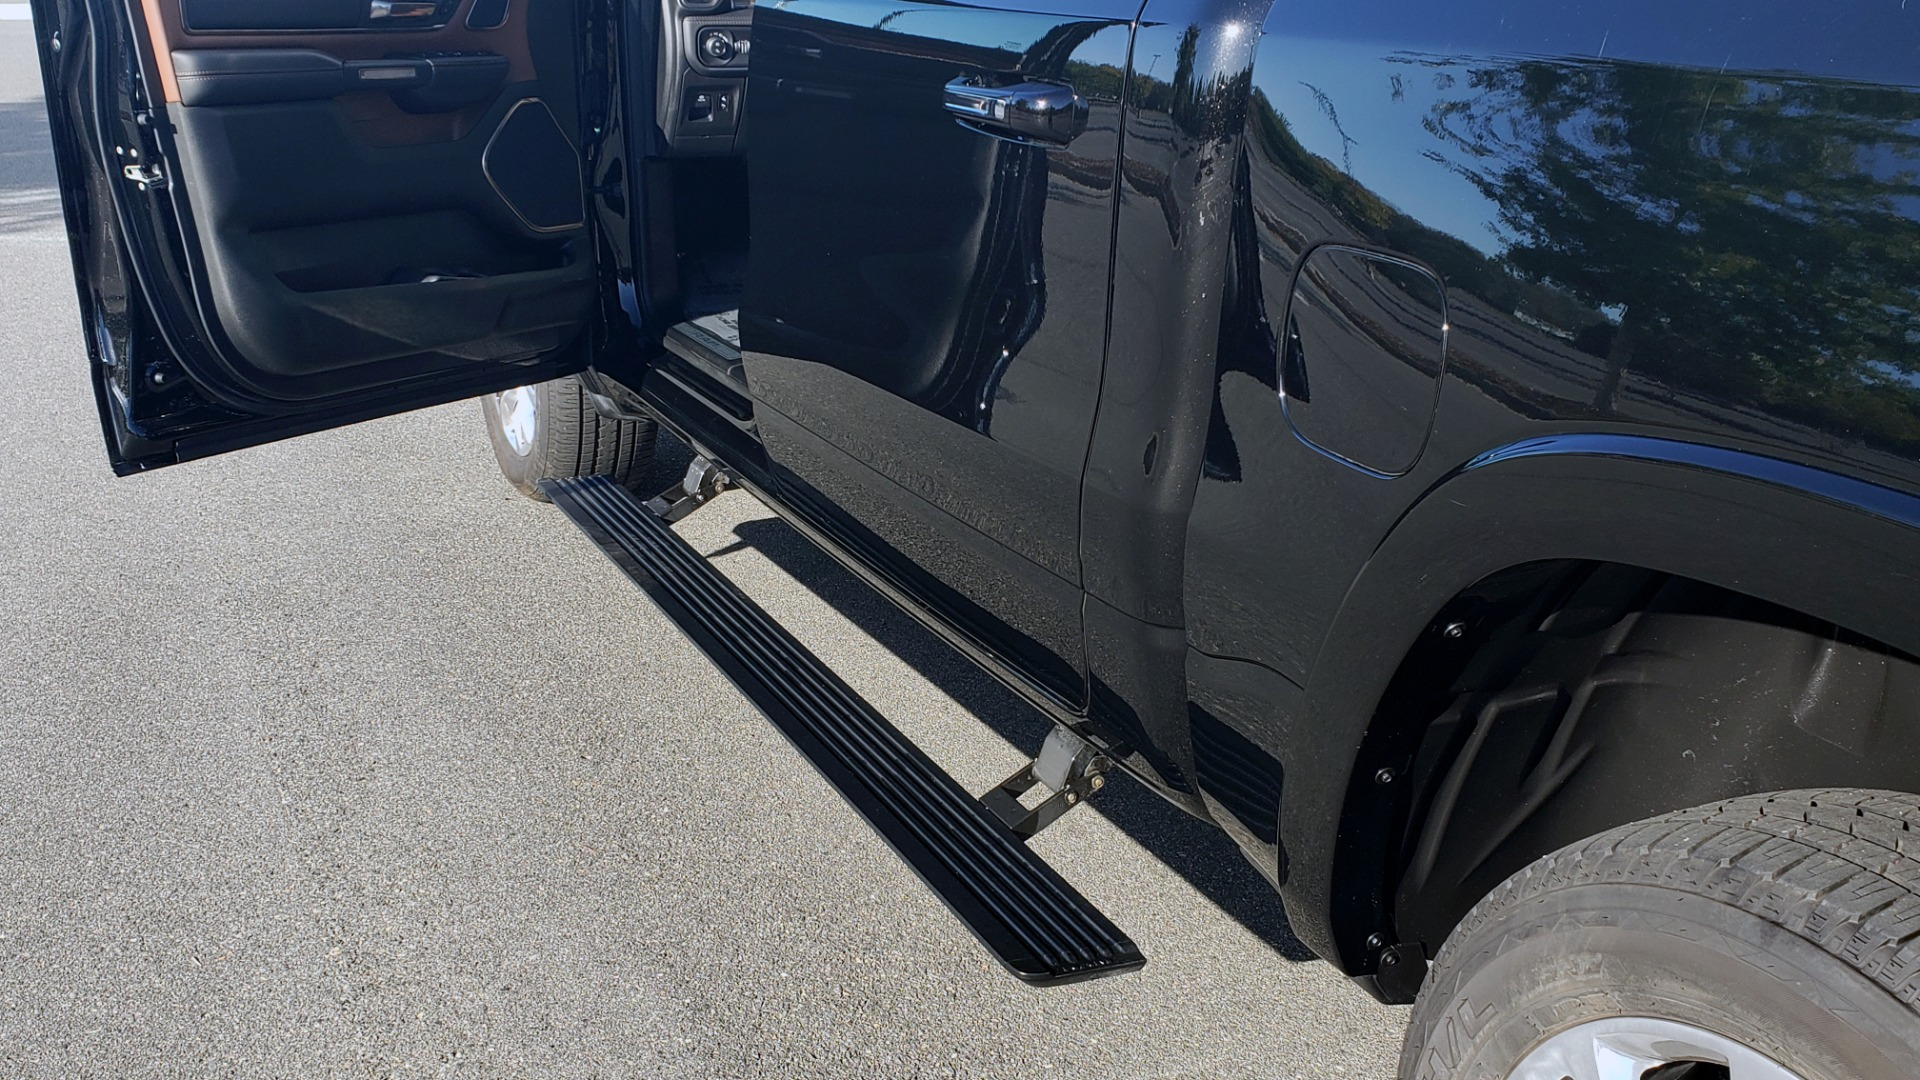 Used 2021 Ram 1500 LONGHORN LIMITED 4X4 / 5.7L HEMI / CREWCAB / H/K SND / PANO-ROOF / REARVIEW for sale $65,999 at Formula Imports in Charlotte NC 28227 10